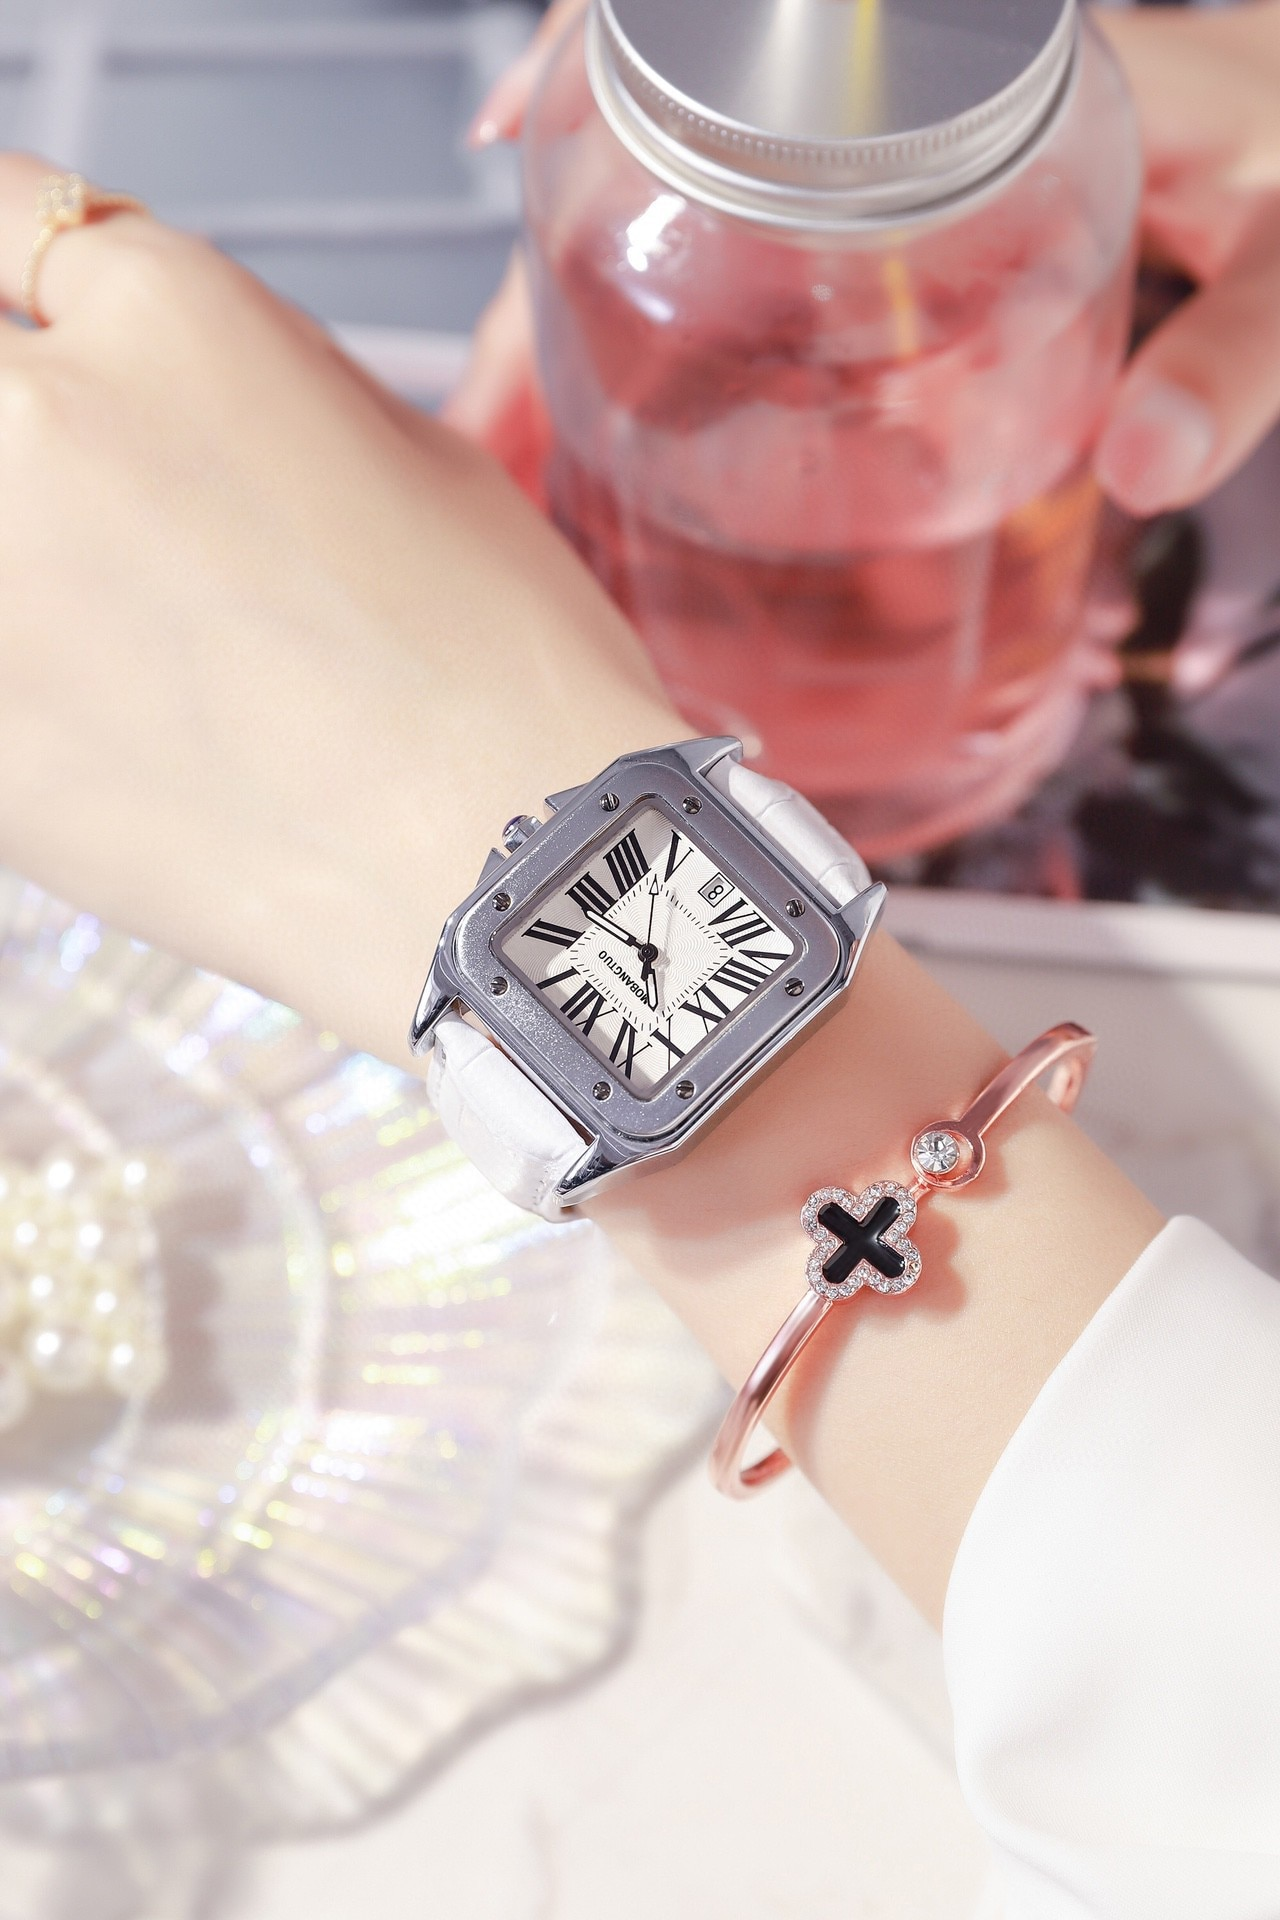 Women's Watch Square Fashion Big Dial Waterproof Calendar Quartz Gift Automatic Watch Relojes Para Mujer Stainless Steel Watch enlarge